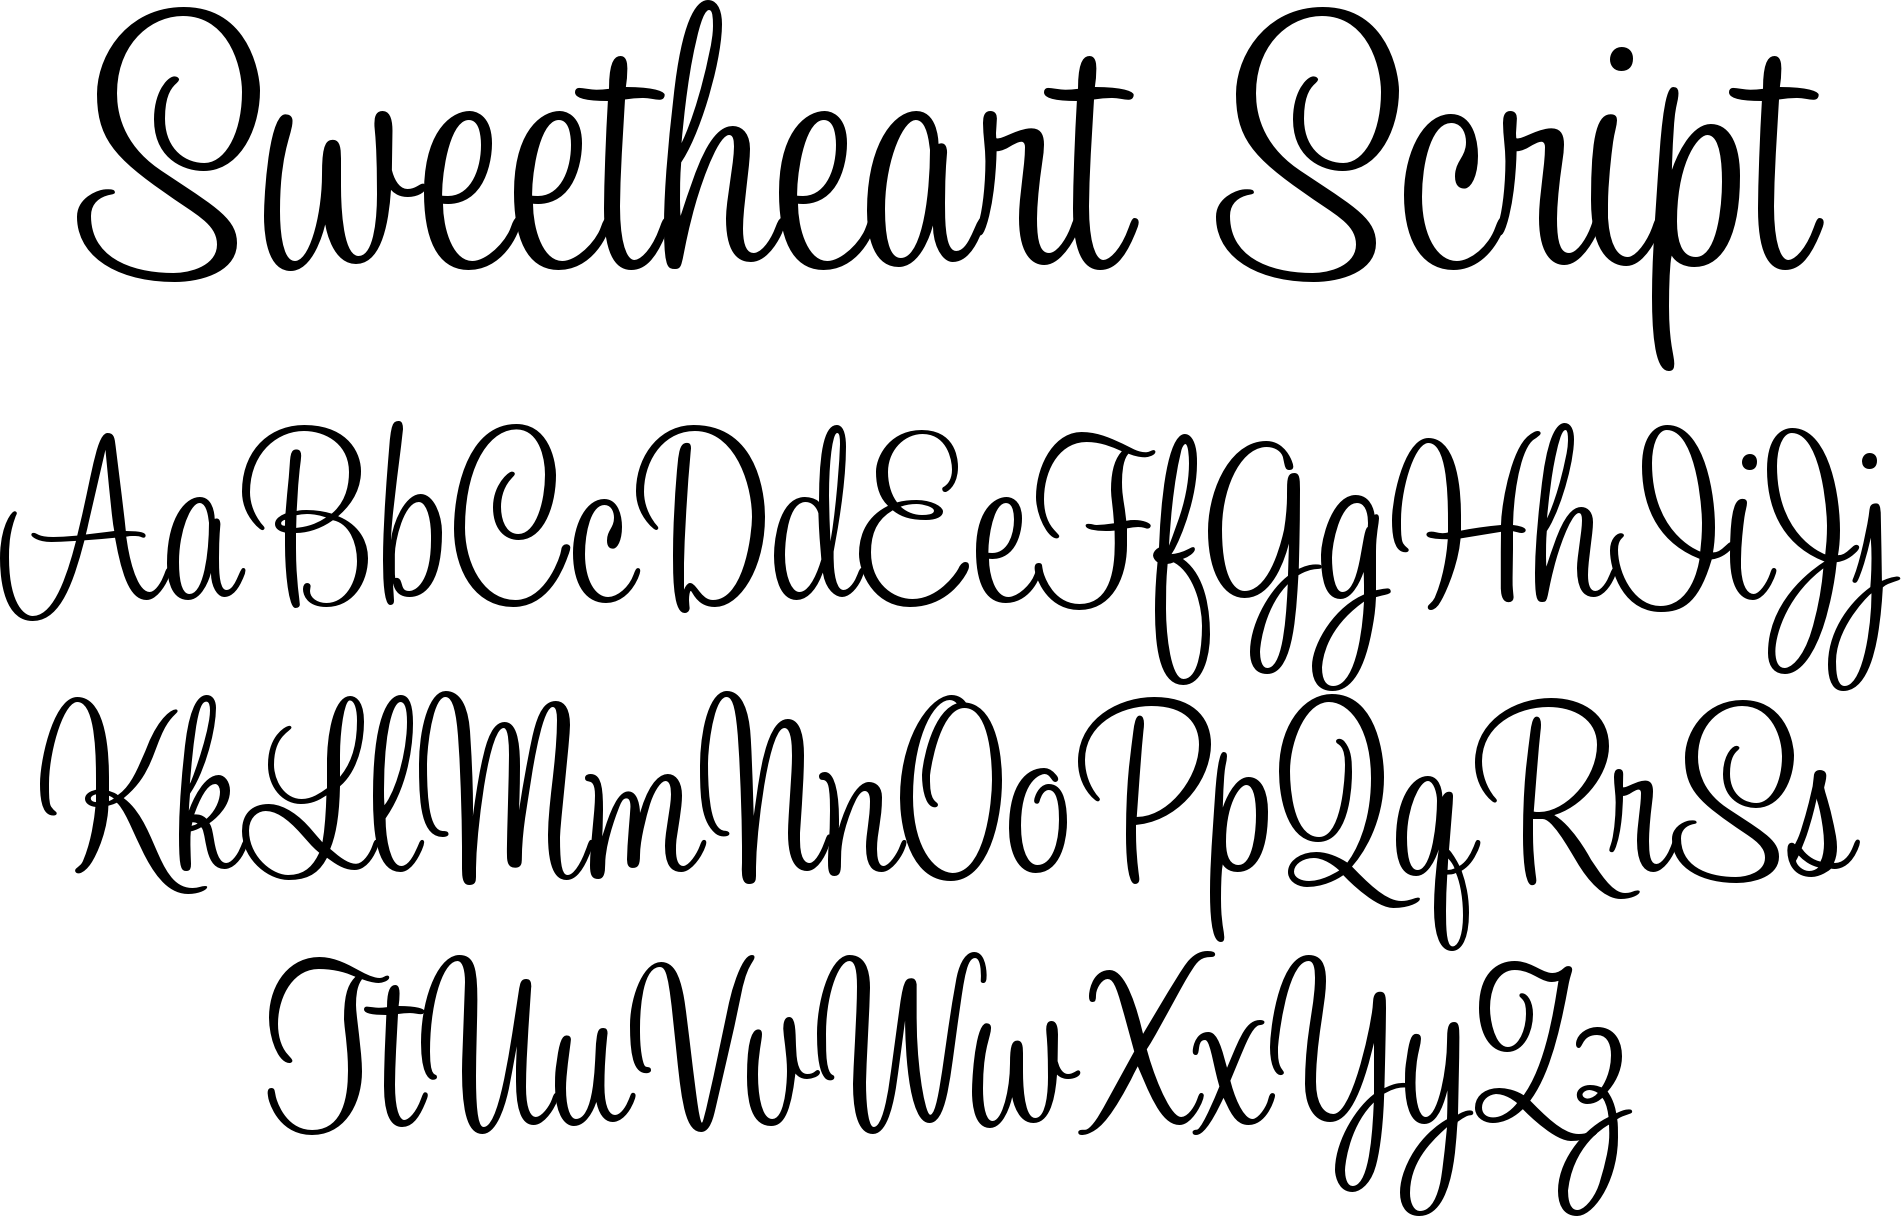 Sweetheart script tattoos that i love pinterest high for Flowy tattoo fonts